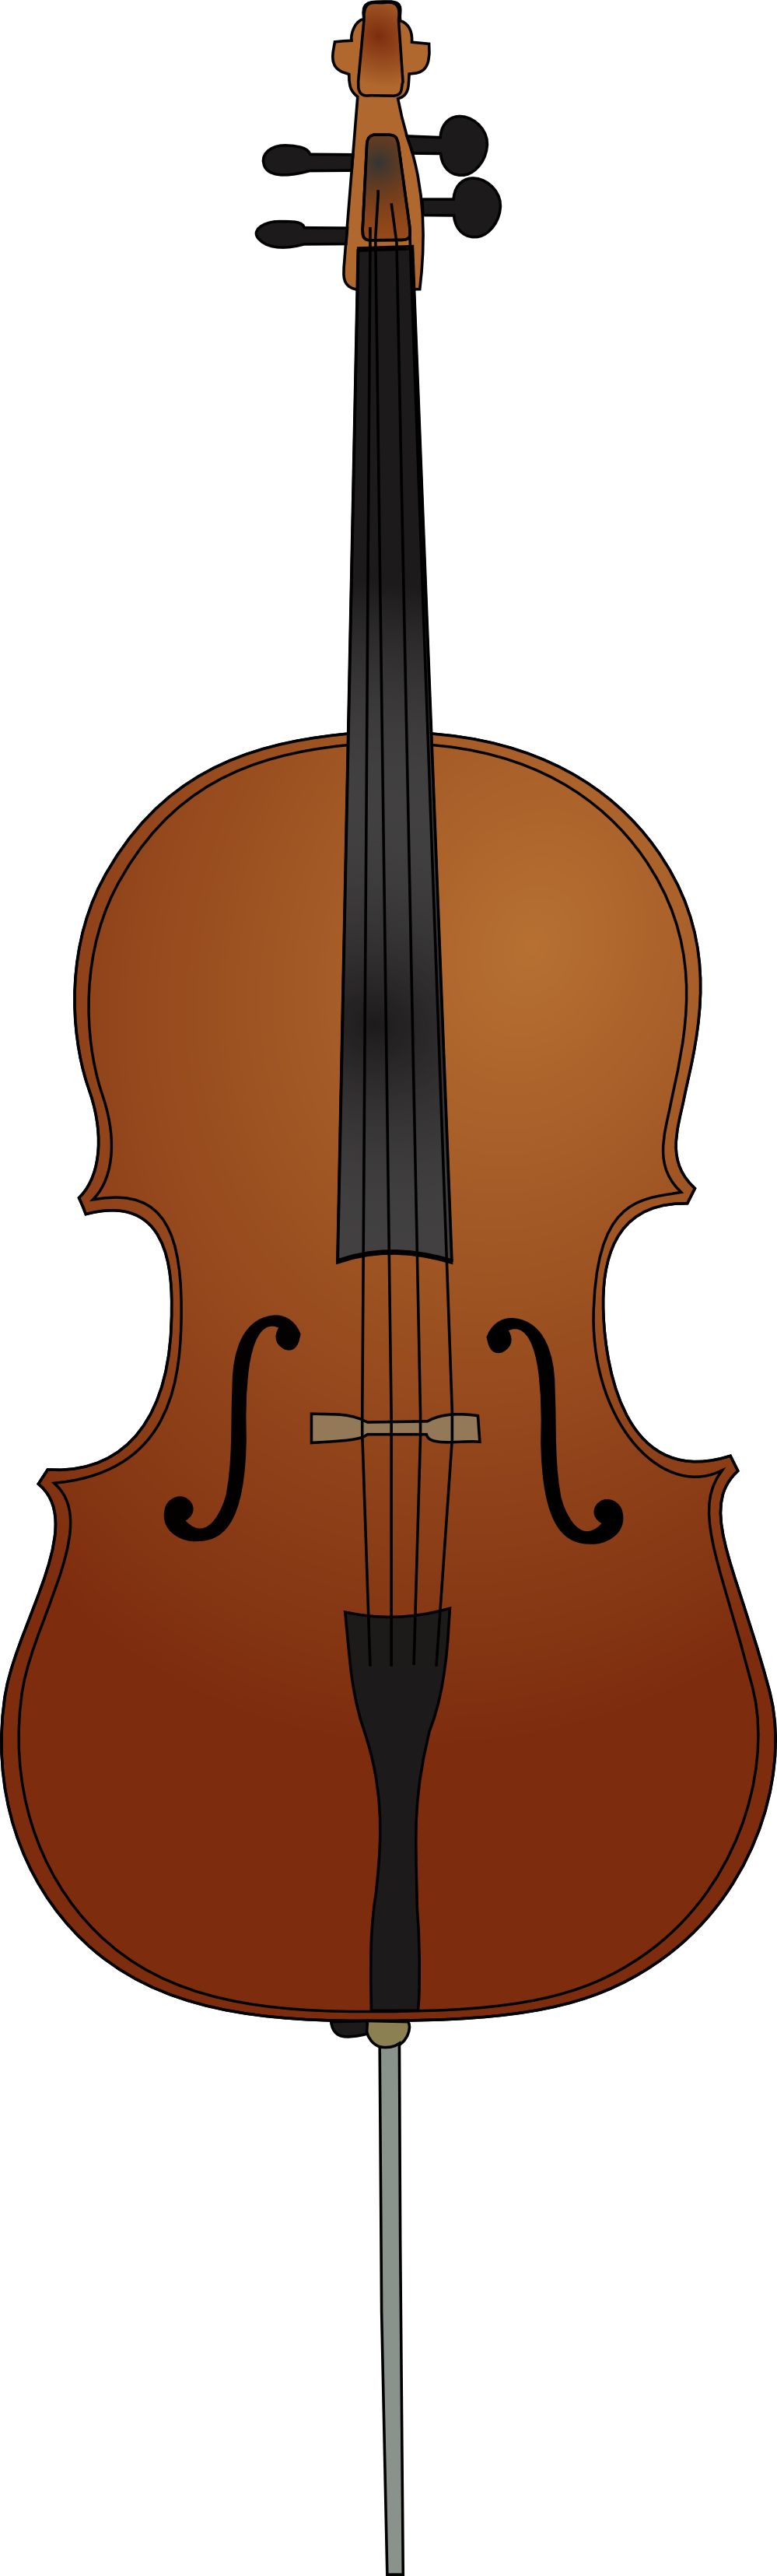 Cello vector silhouette. Free cliparts download clip